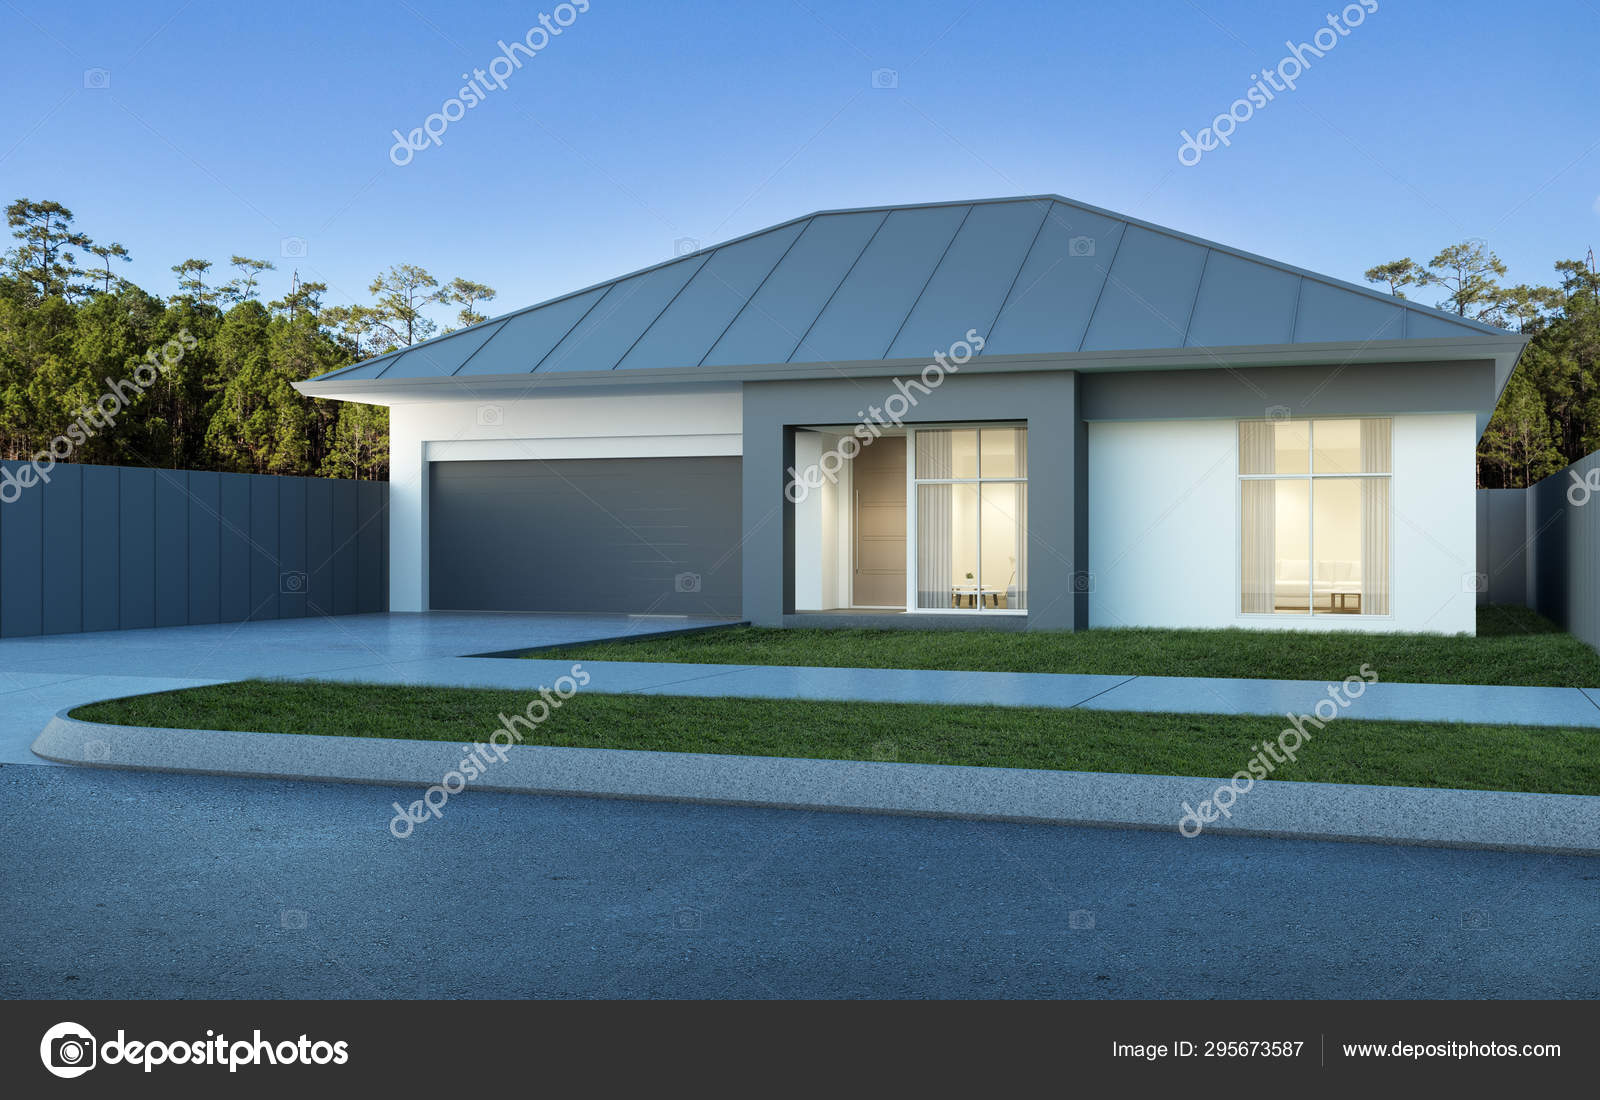 View Modern House Australian Style Pine Forest Blue Sky Background Stock Photo C Nuchao 295673587